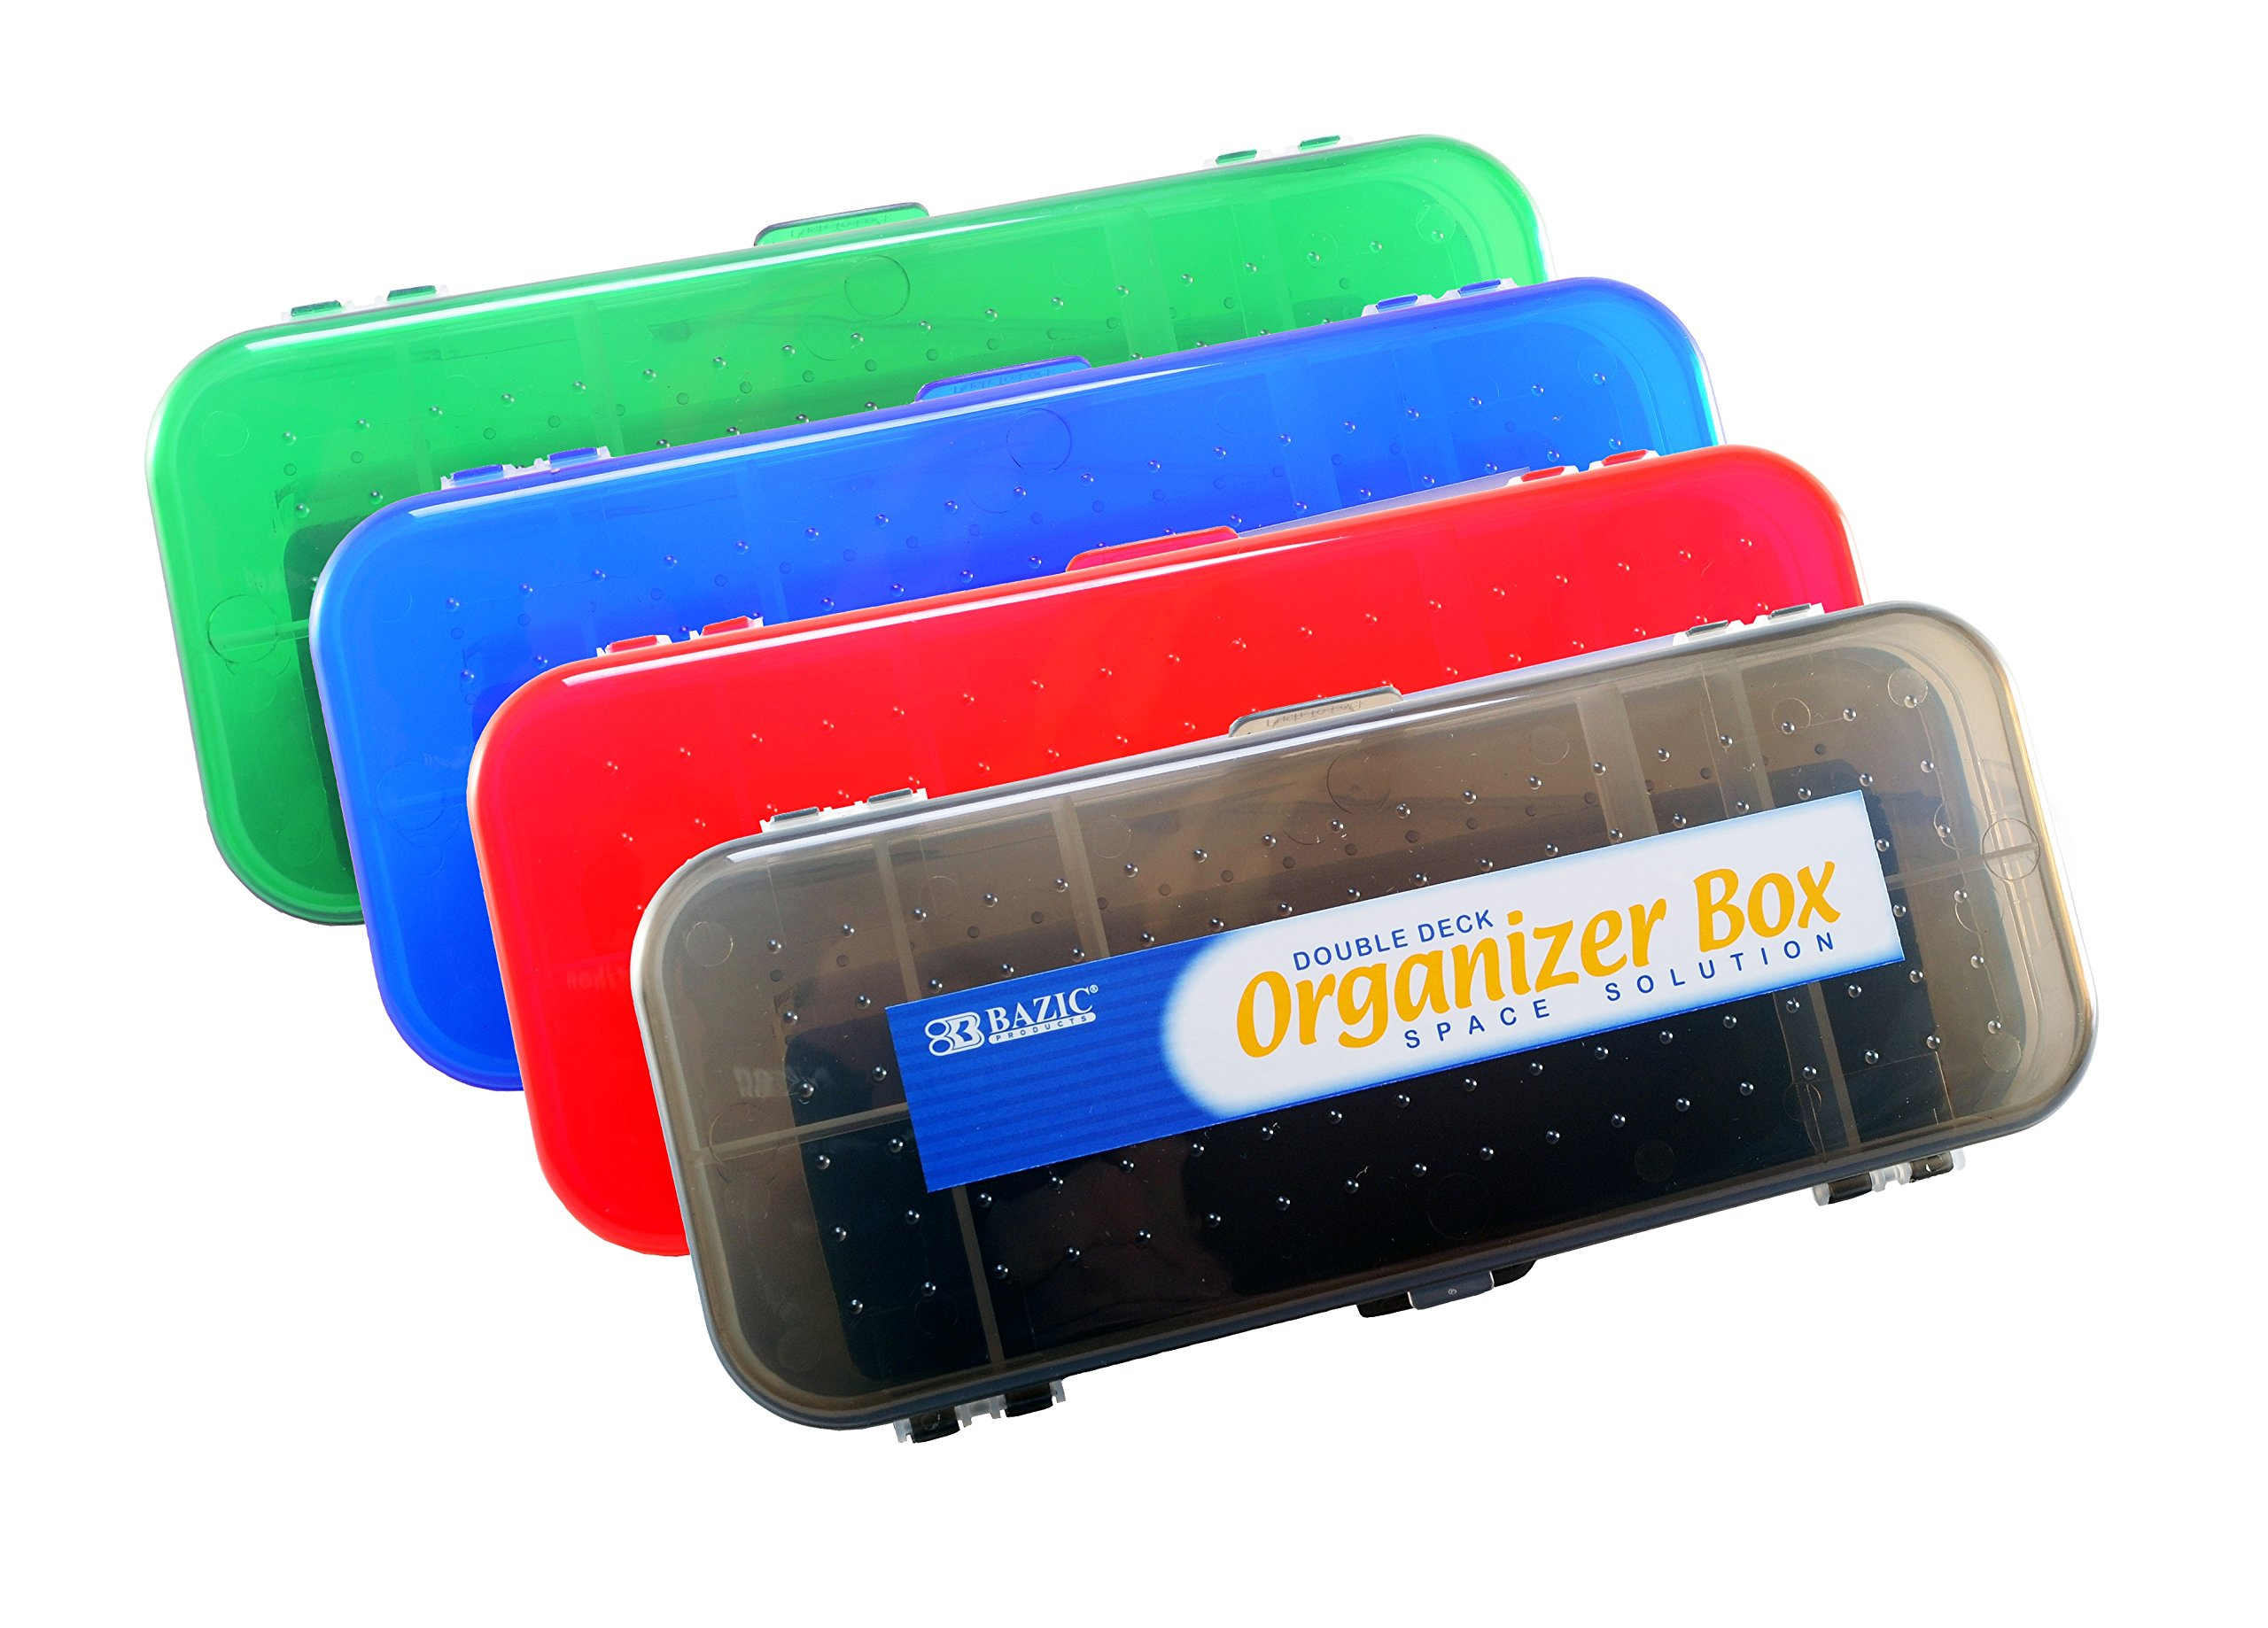 Double Deck Organizer Box, 8.25'' x 3.25'' x 1.5'', 2 Latched Sides - 7 Compartments (4-Pack, Black, Red, Blue, Green)